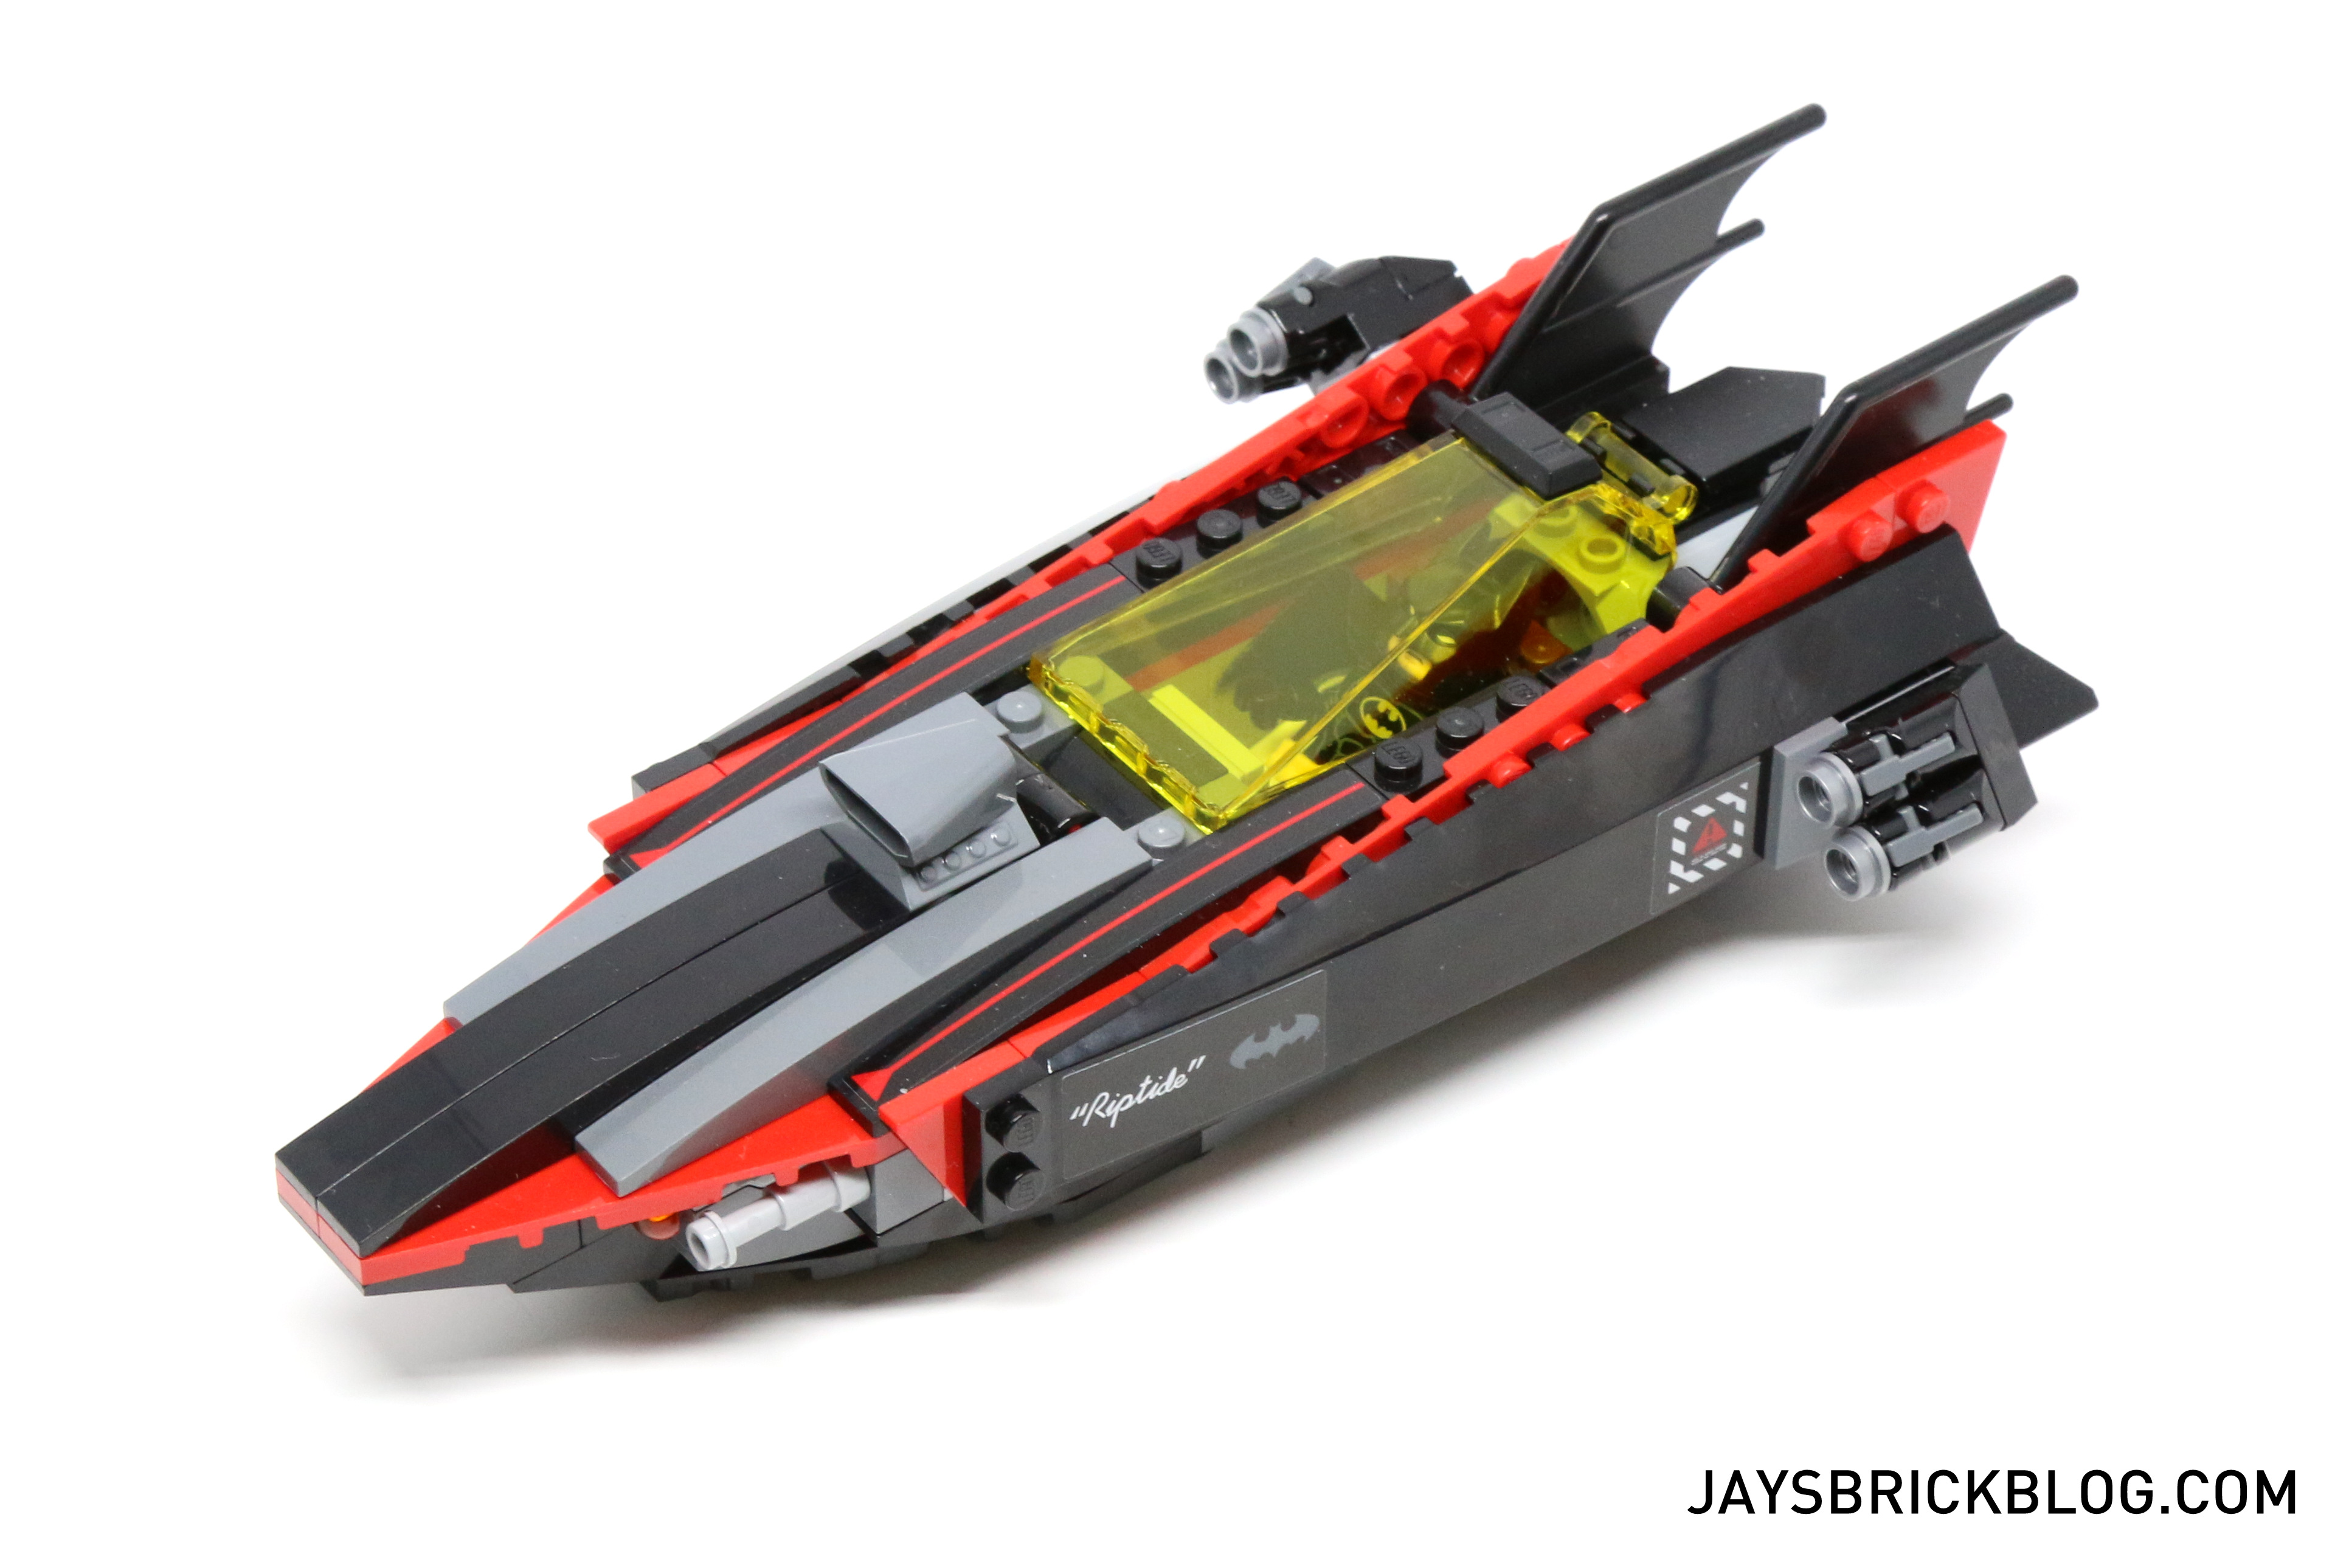 Review Lego 70909 Batcave Break In The Batman Movie Next Vehicle Set Is Batboat Which Has A Cute Nickname Riptide I Really Find It Quite Amusing That Comes Up With Adorable